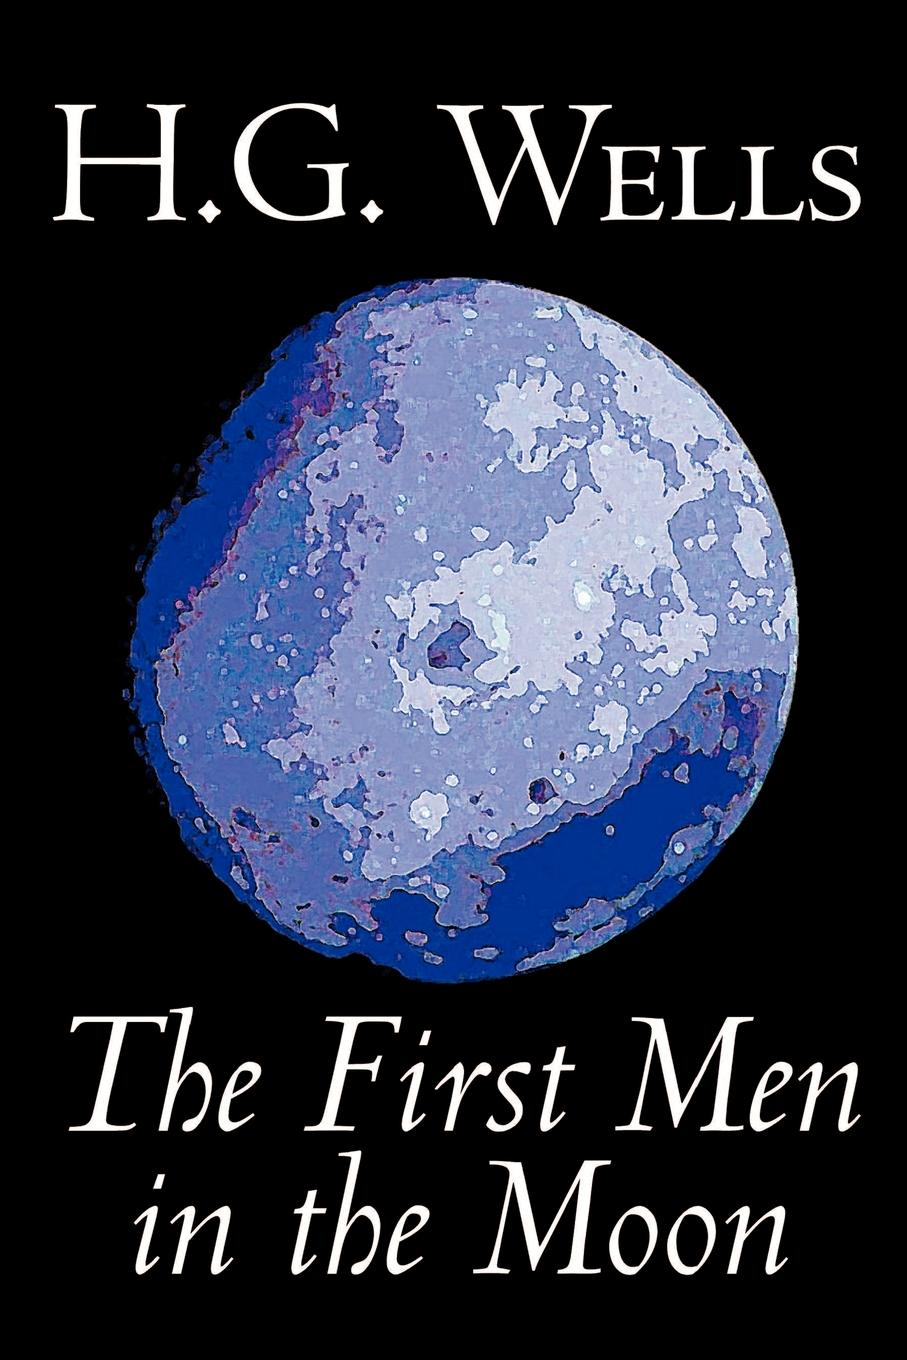 H. G. Wells The First Men in the Moon by H. G. Wells, Science Fiction, Classics